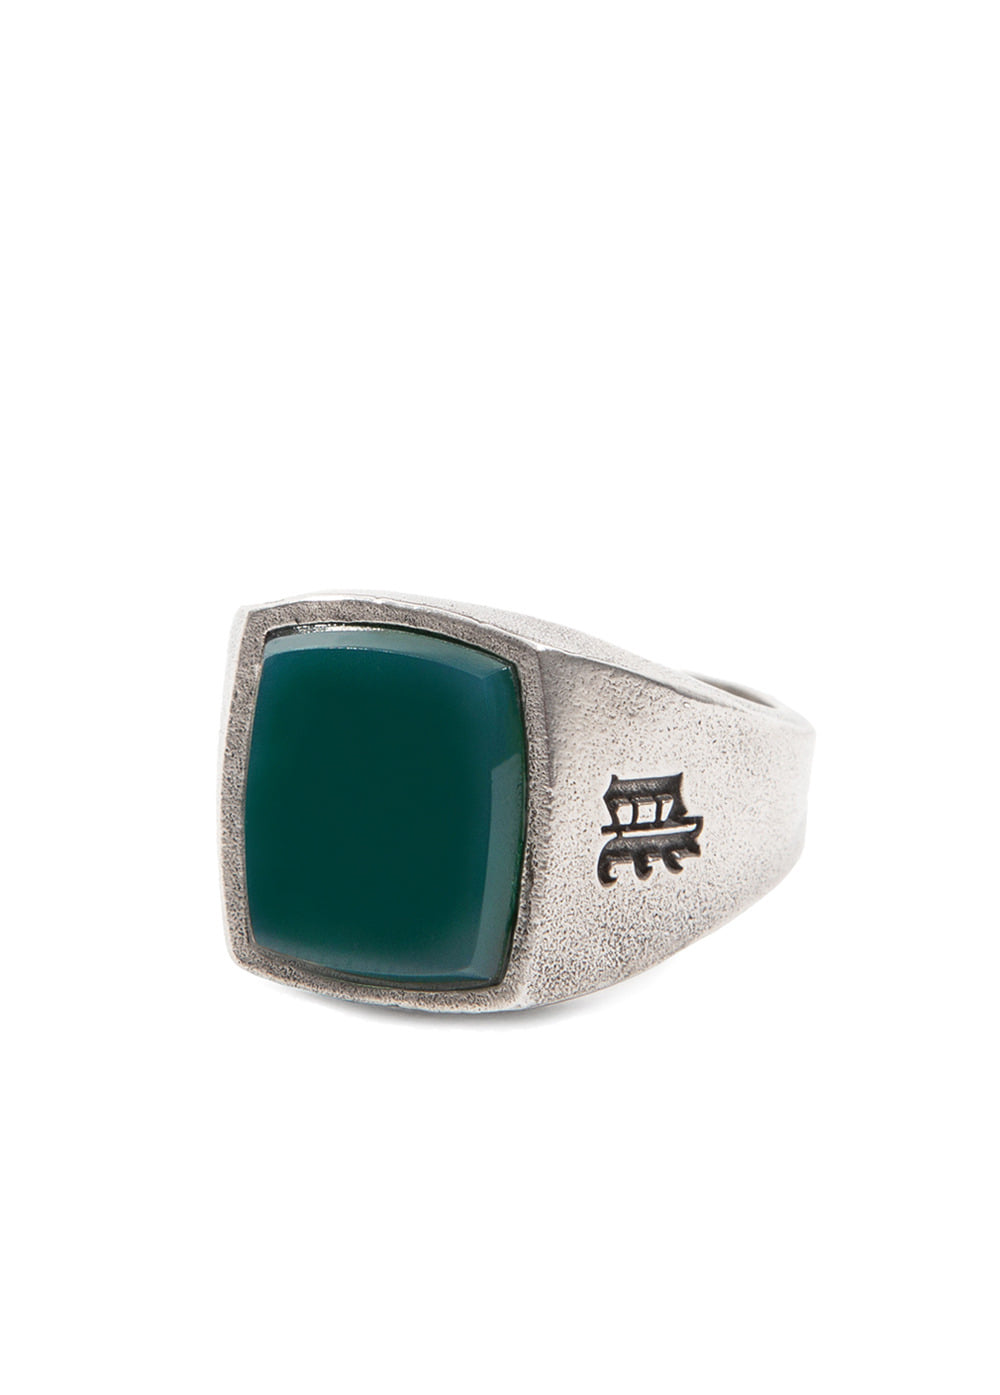 FUZZ x KUJAAN OLD ENGLISH RING green onyx